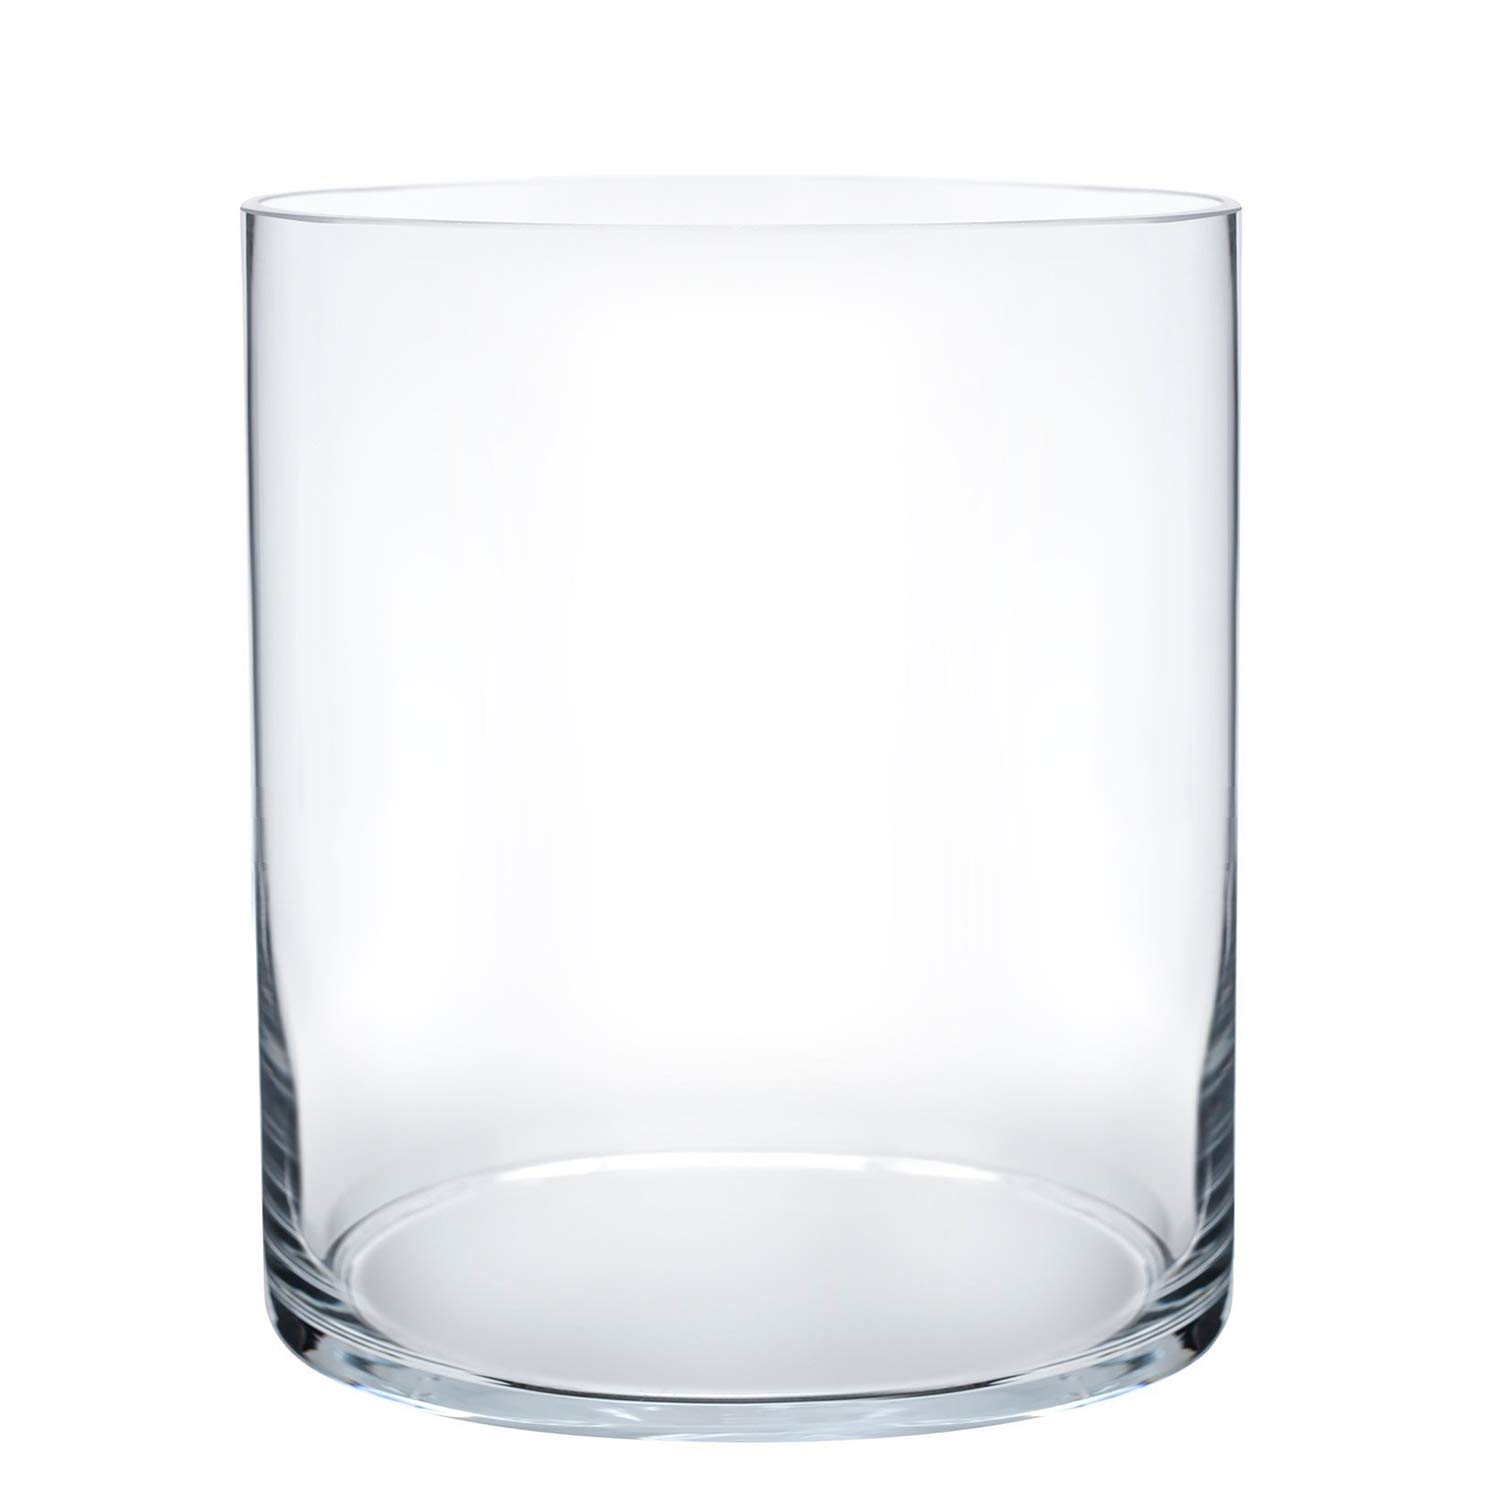 Royal Imports Flower Glass Vase Decorative Centerpiece for Home or Wedding Cylinder Shape, 8'' Tall, 6'' Opening, Clear